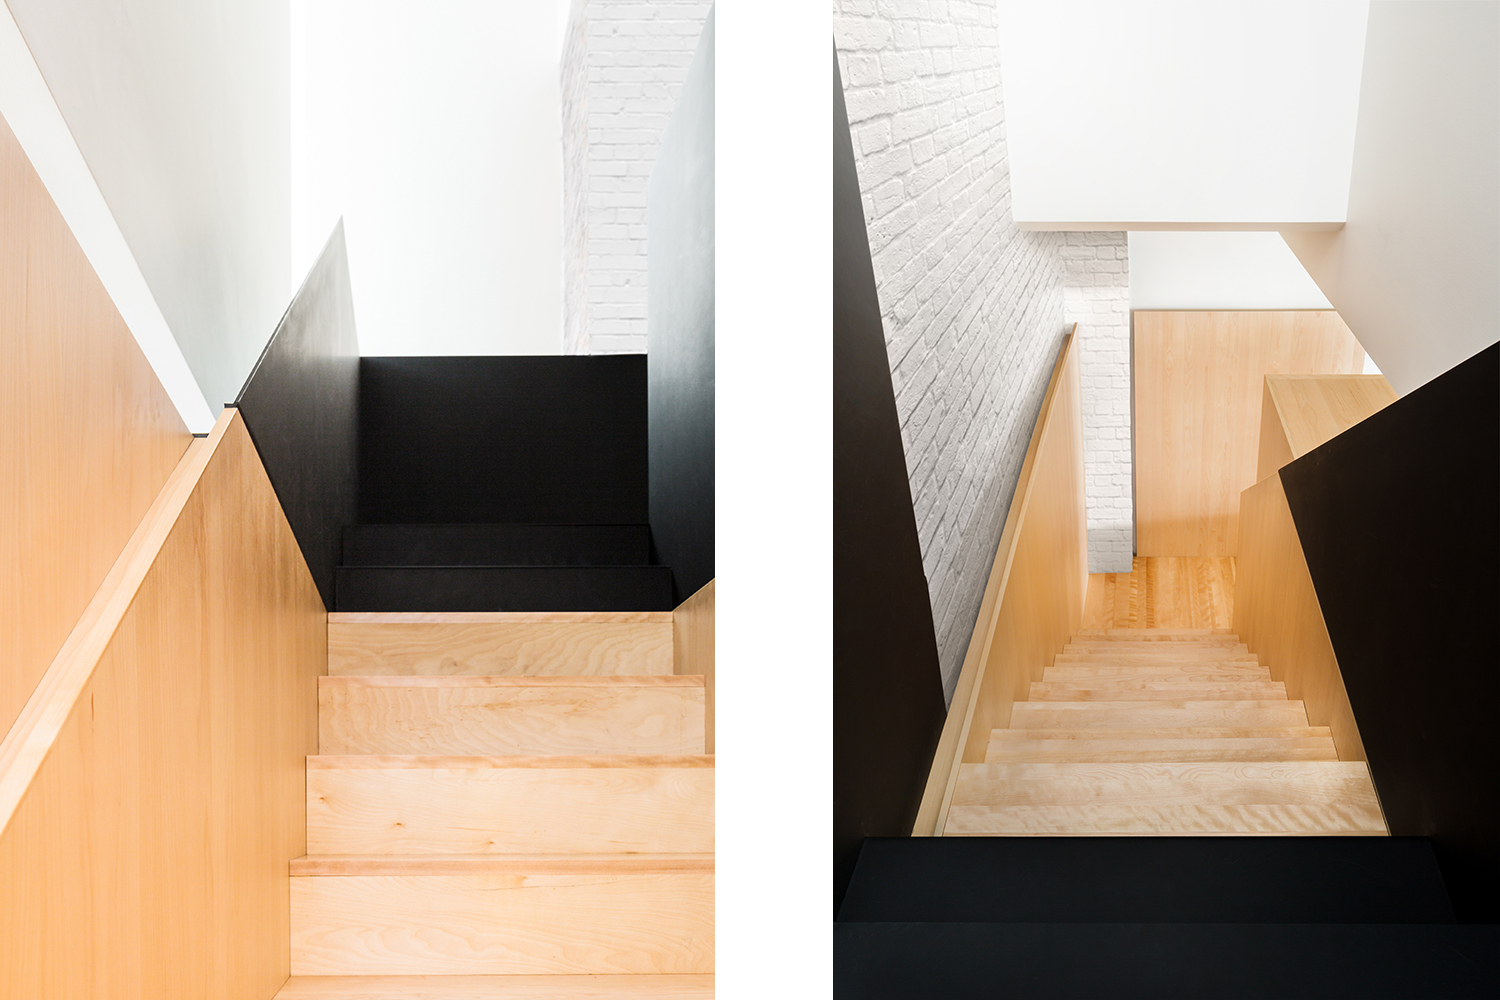 Renovation of kitchen. Storage block under the stairs. Built-in refrigerator. Island with bar height counter in white quartz. Another view of the railing of the black metal staircase